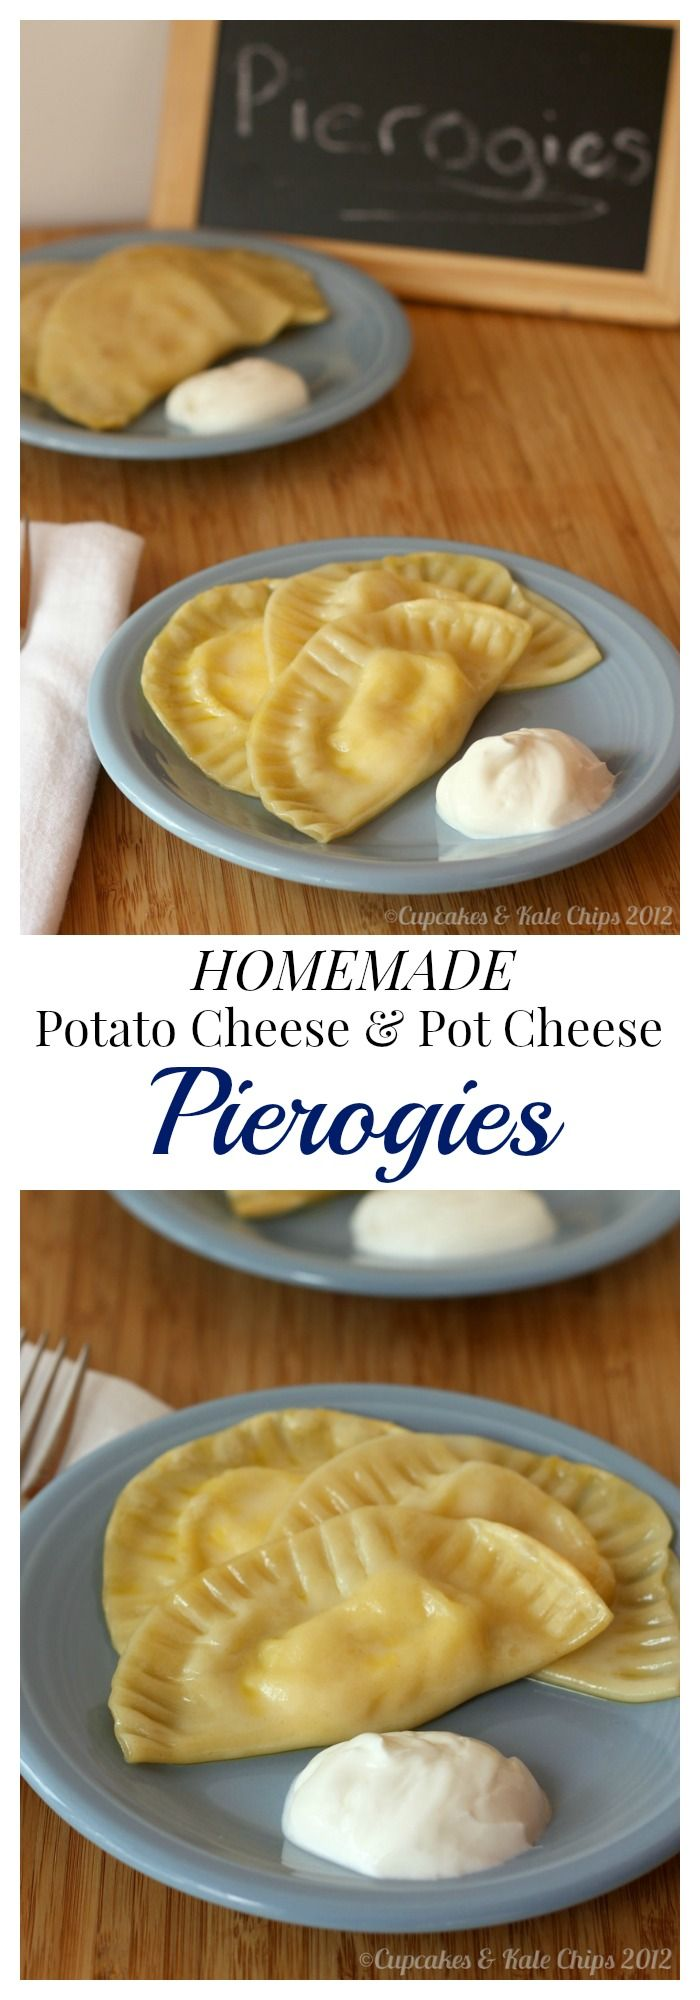 how to cook pierogies in microwave